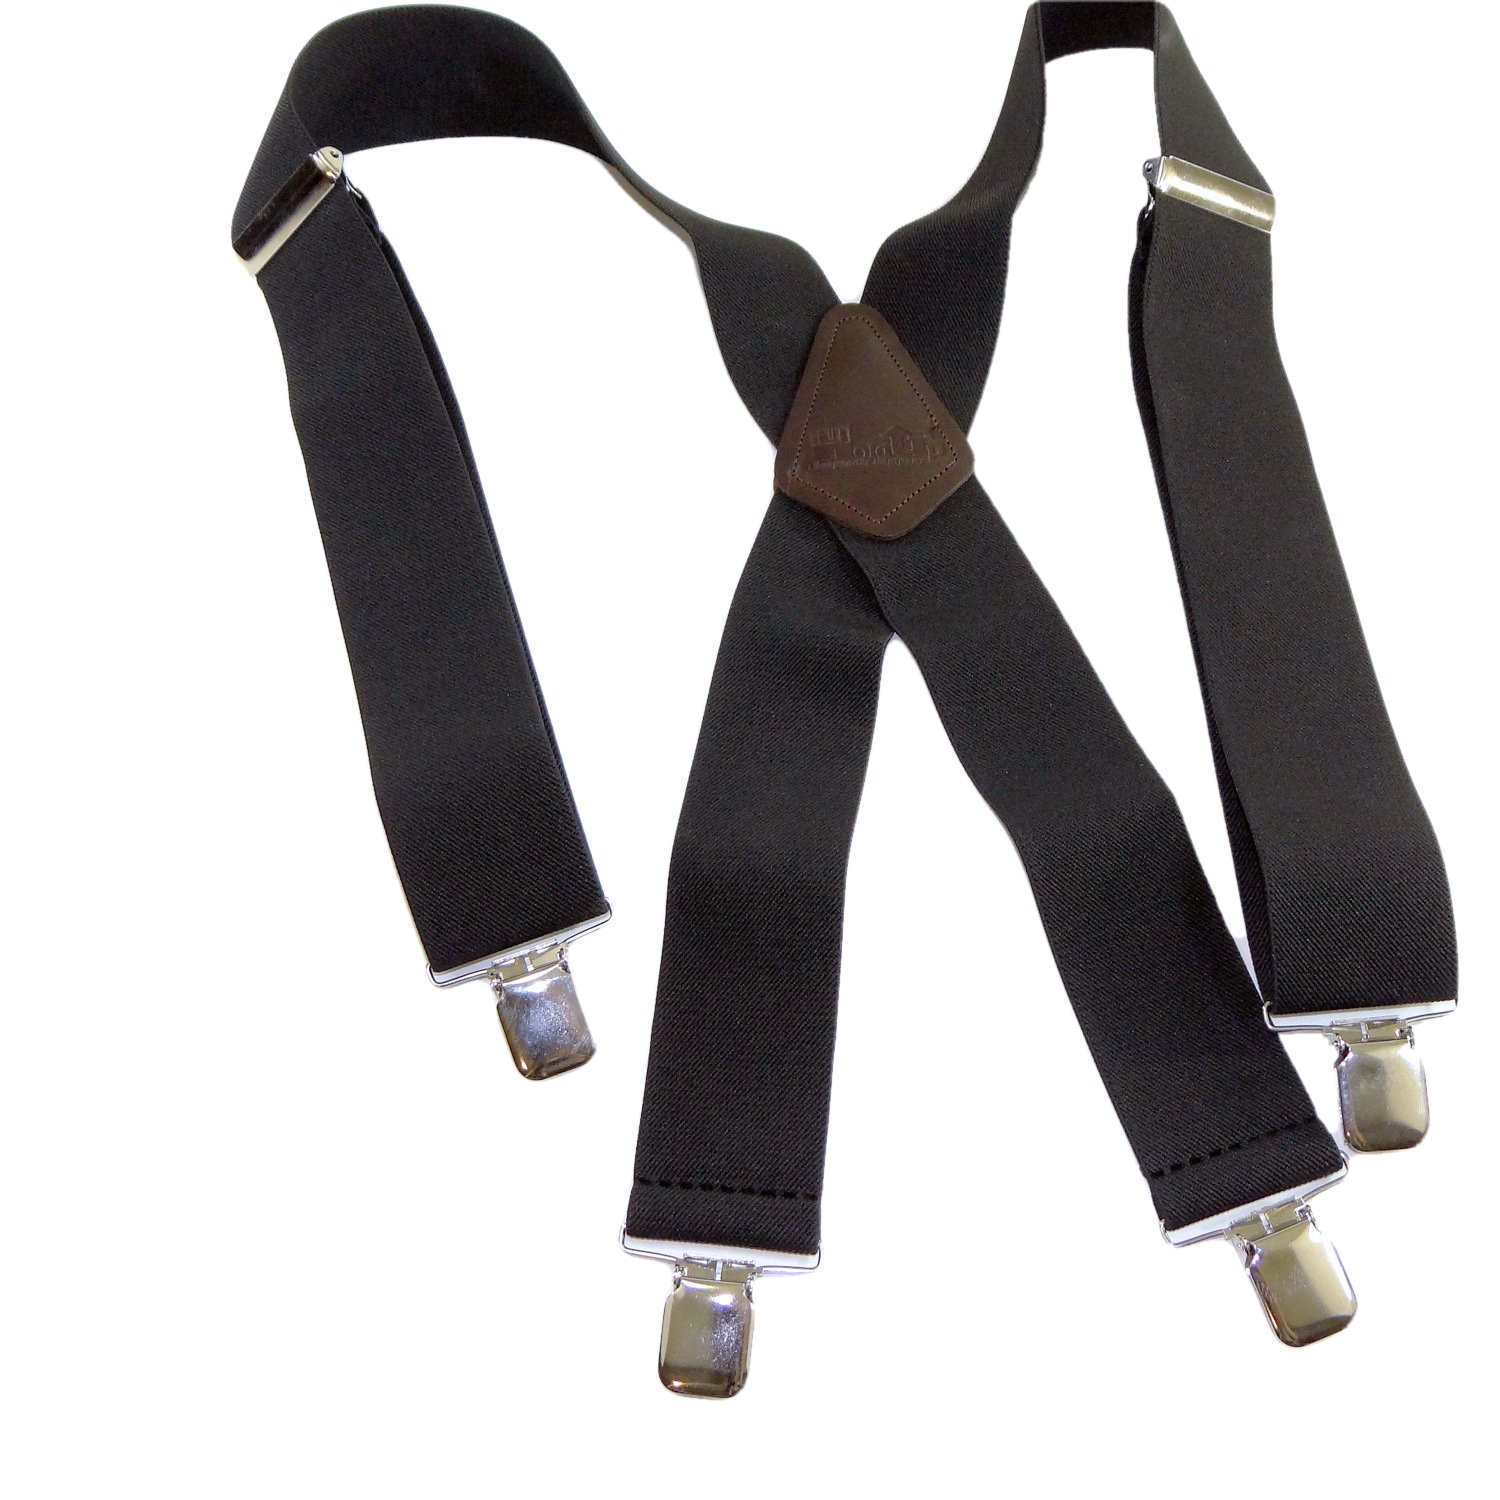 Holdup Suspenders Company exclusive Contractor Series 2'' Wide Black Suspenders with Jumbo No-slip Silver Clips are made in the USA